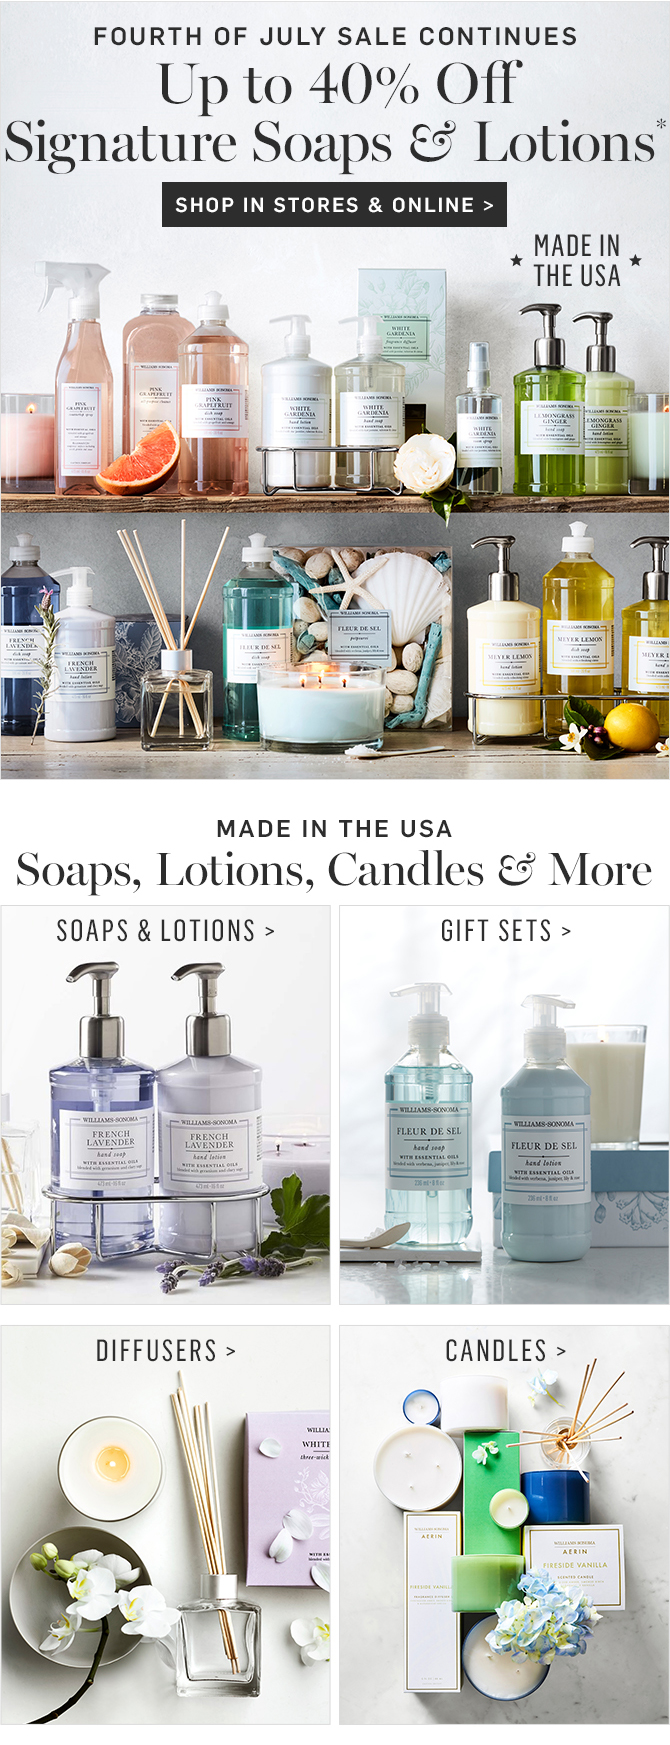 Up to 40% Off Signature Soaps & Lotions* - SHOP IN STORES & ONLINE